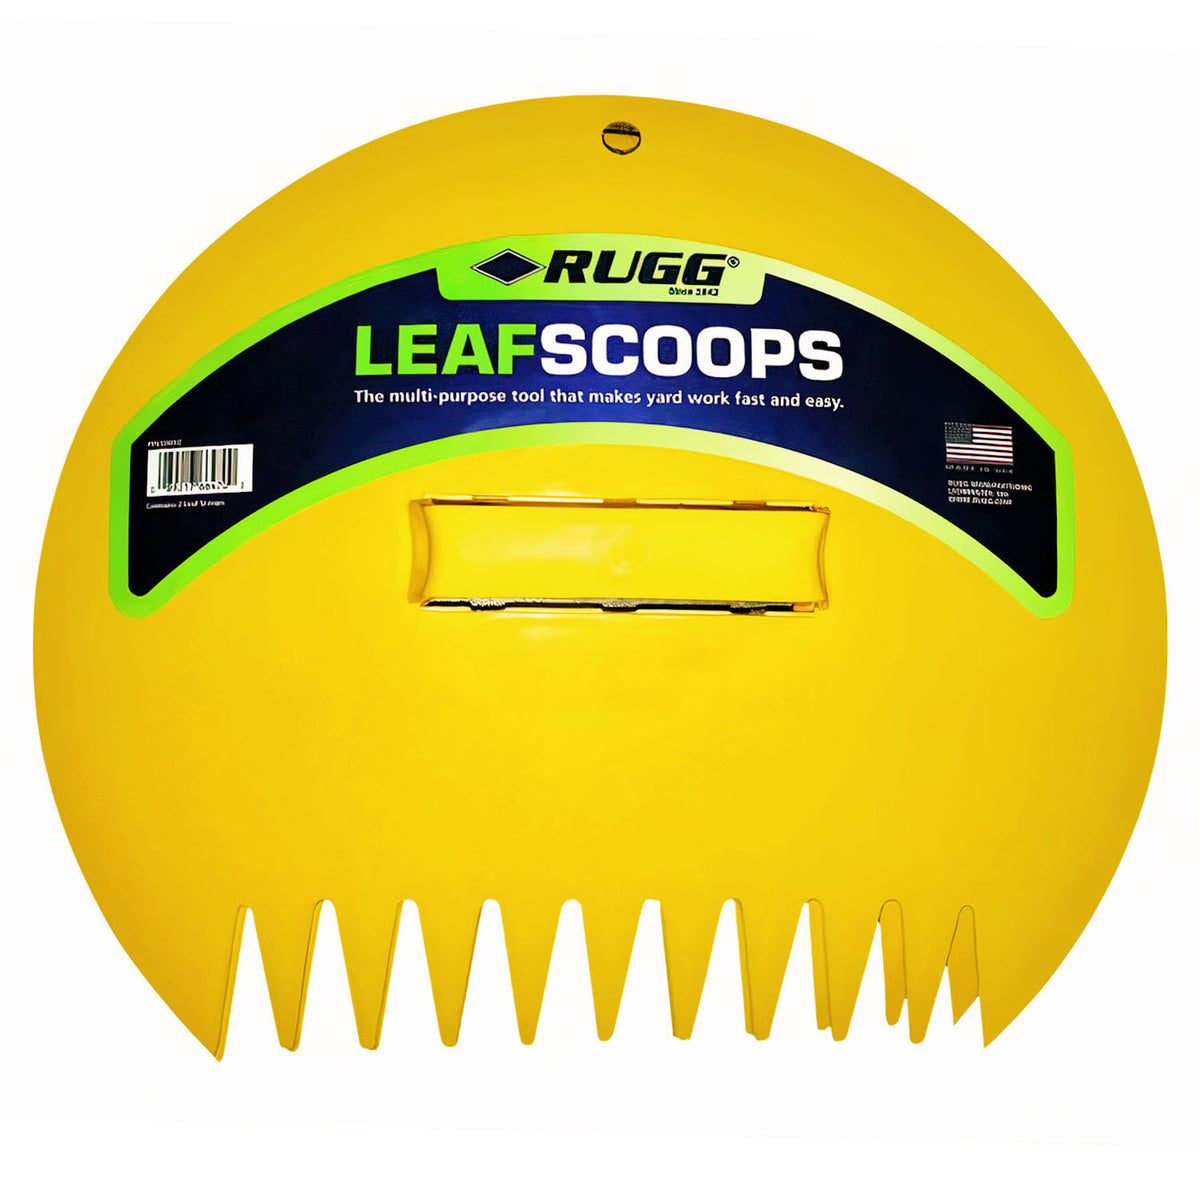 Leaf Scoops, Large Size Hand Rake Claws for Debris & Yard Waste Pick Up, Yellow, (One Pair)